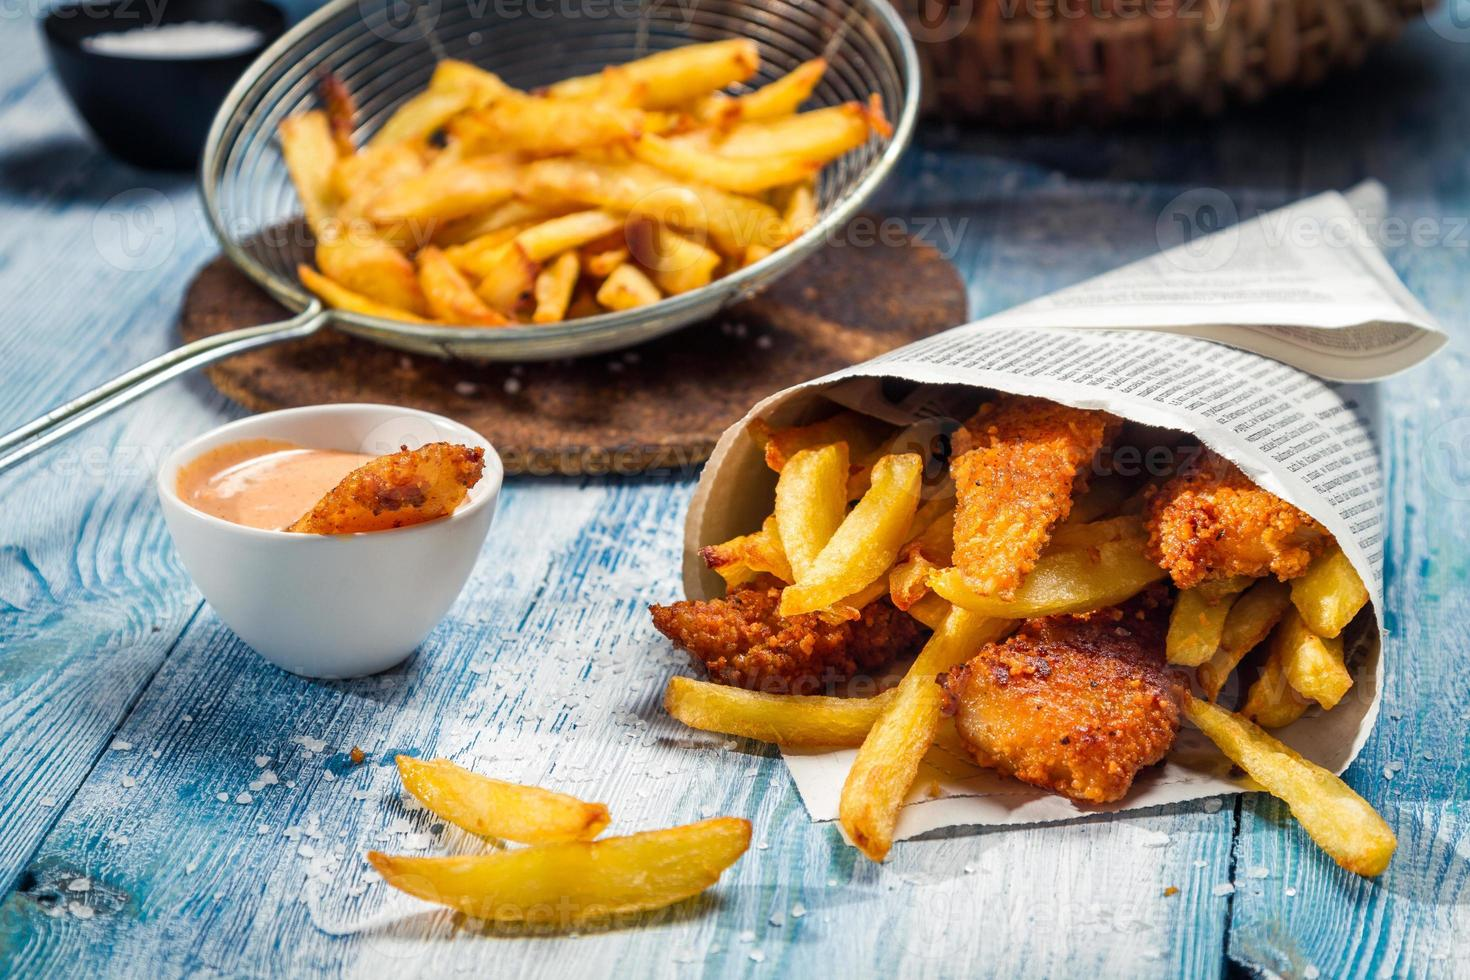 Fish & Chips served in the newspaper photo